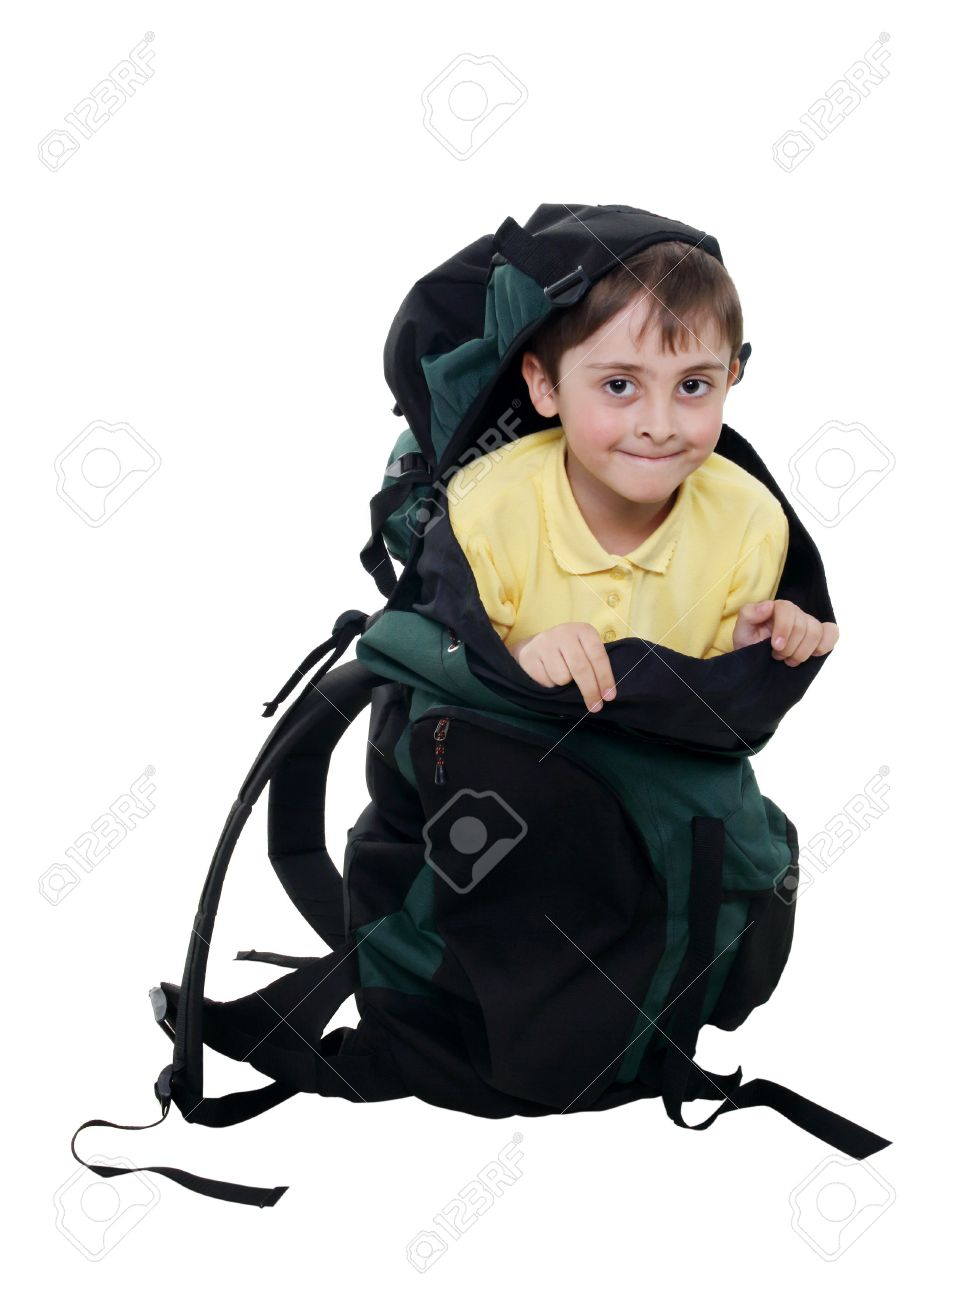 small boy in a big tourist backpack on a white background. (isolated) Stock 8de0e8595d228